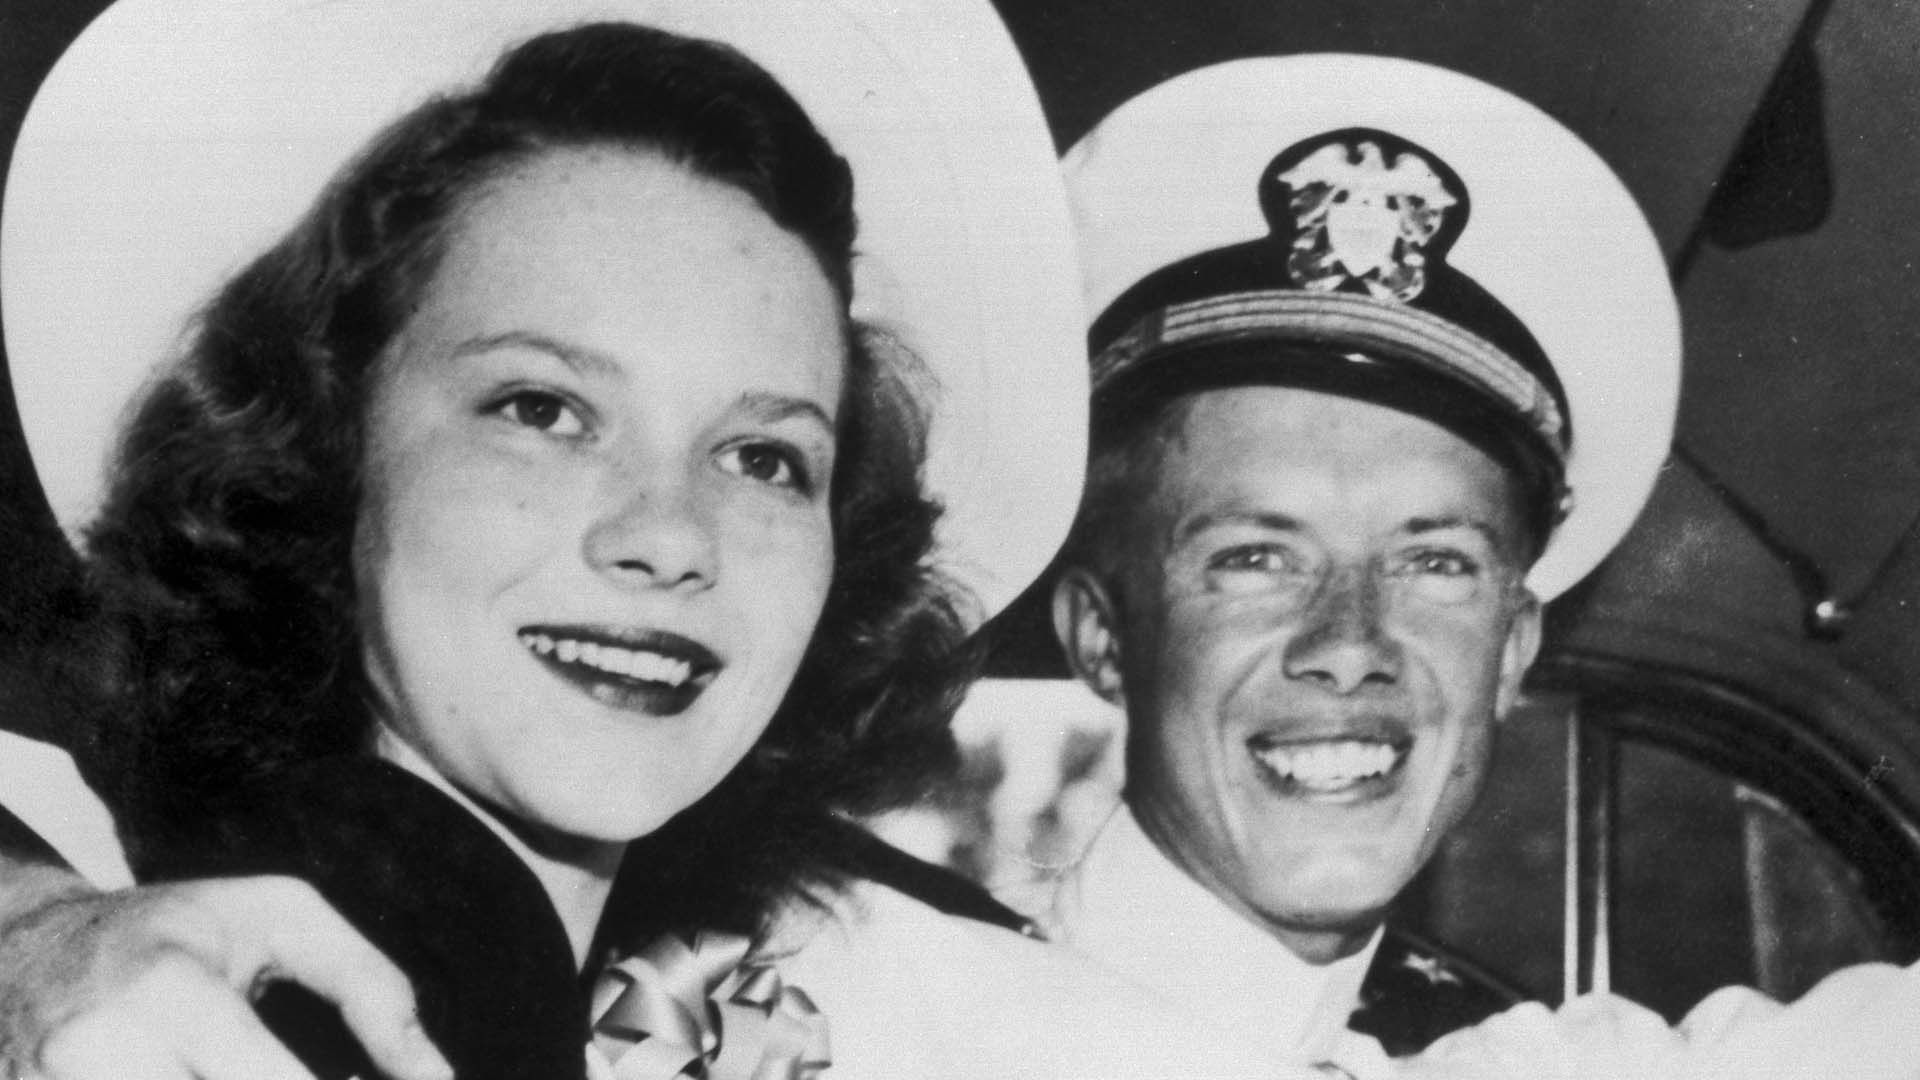 A black and white photo of a young Rosalynn and Jimmy Carter in the 1940s